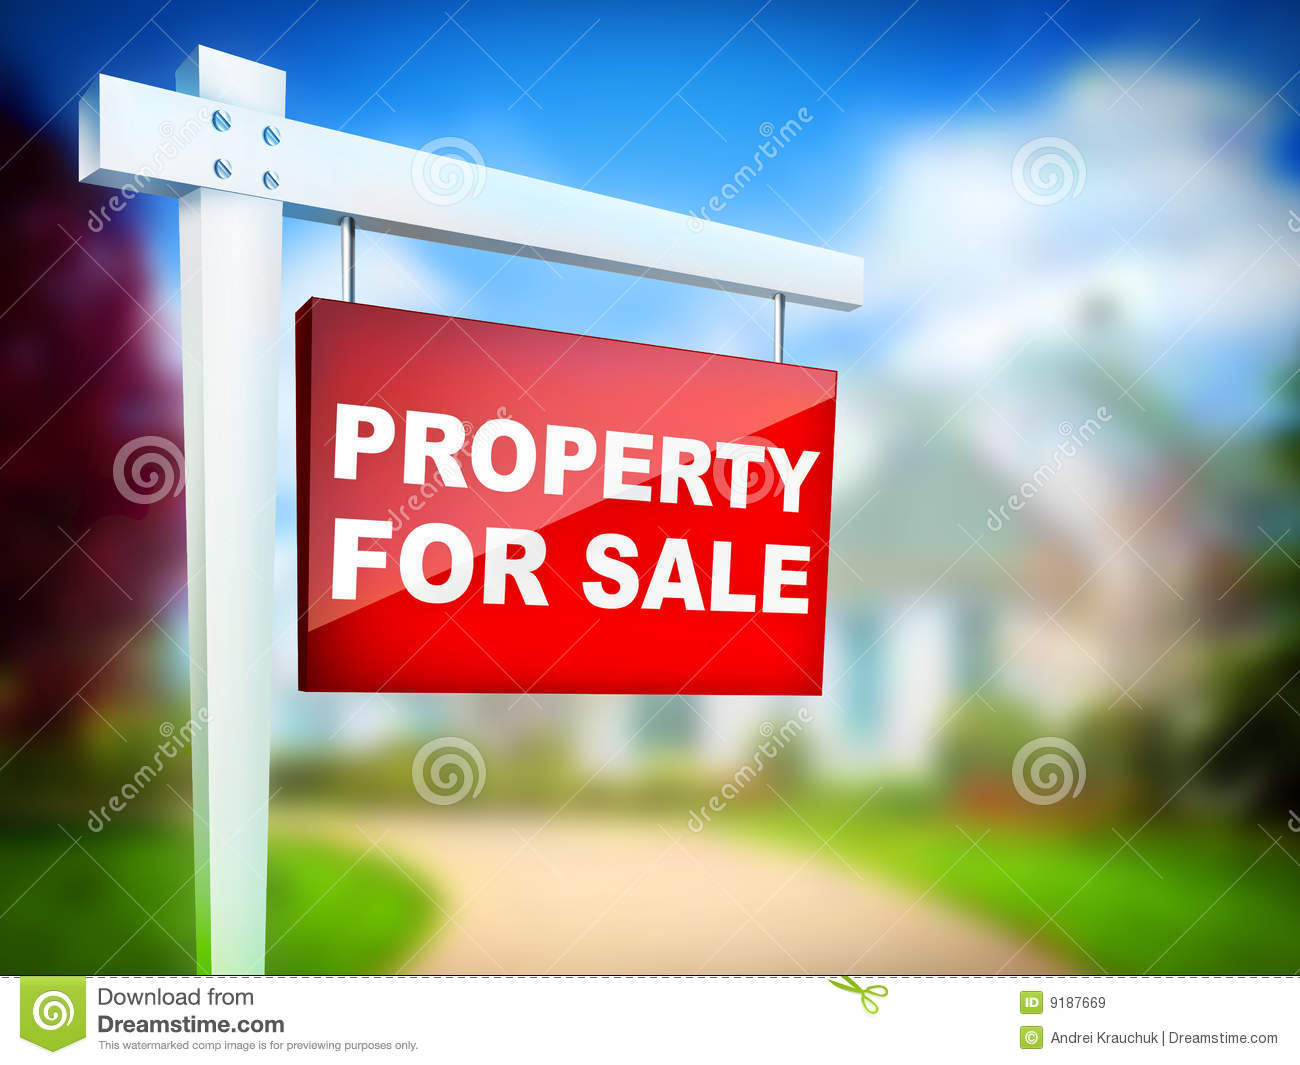 Real Estate Tablet - Property For Sale.